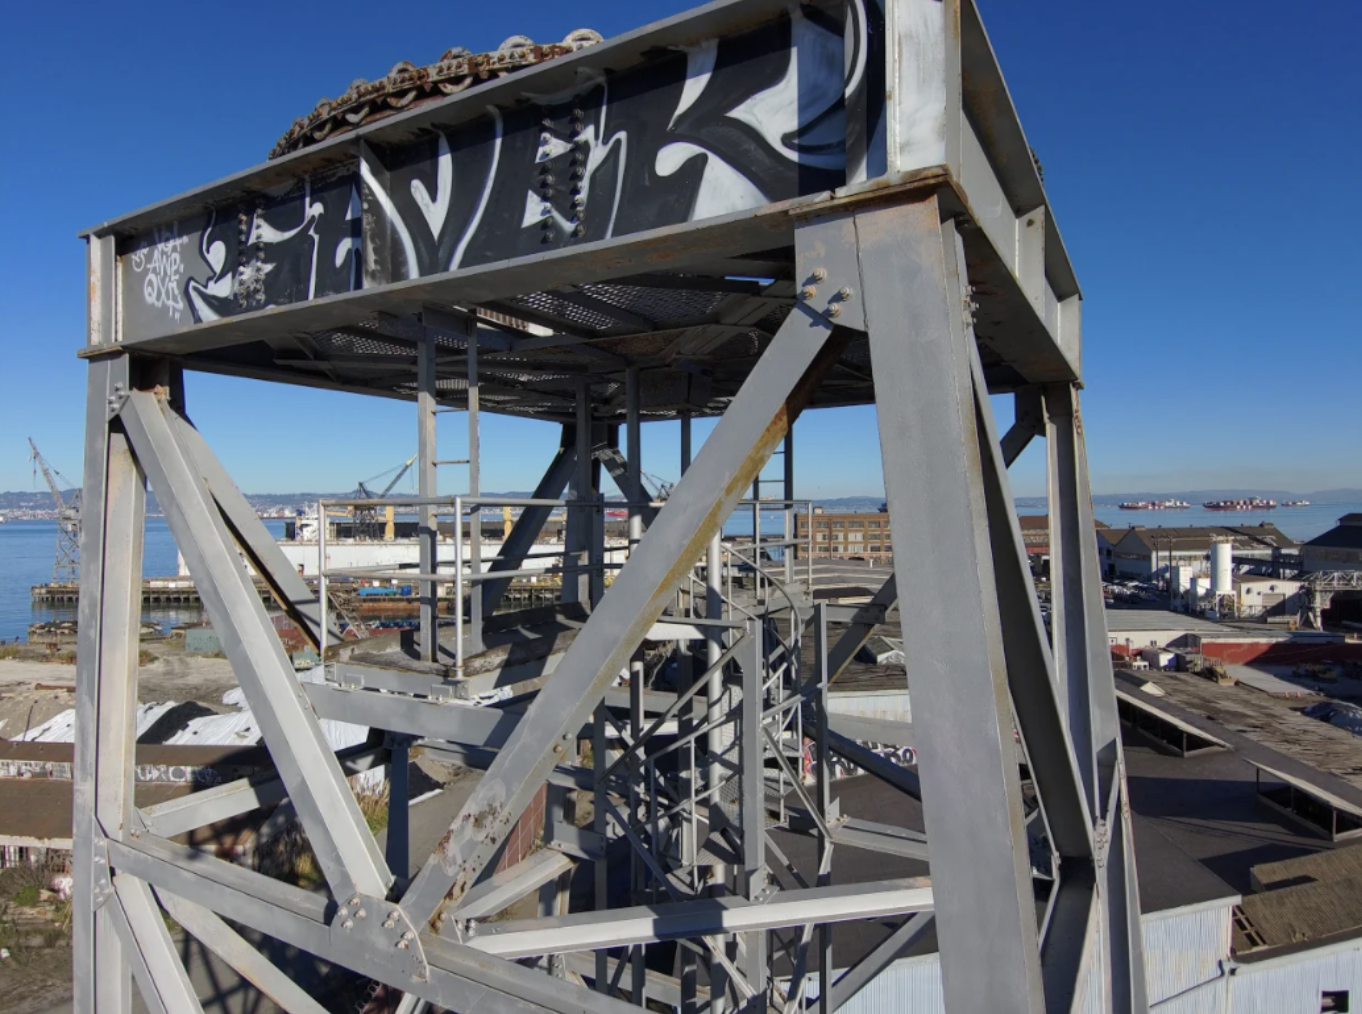 A construction site crane mast needs to be inspected for rust and other damage.